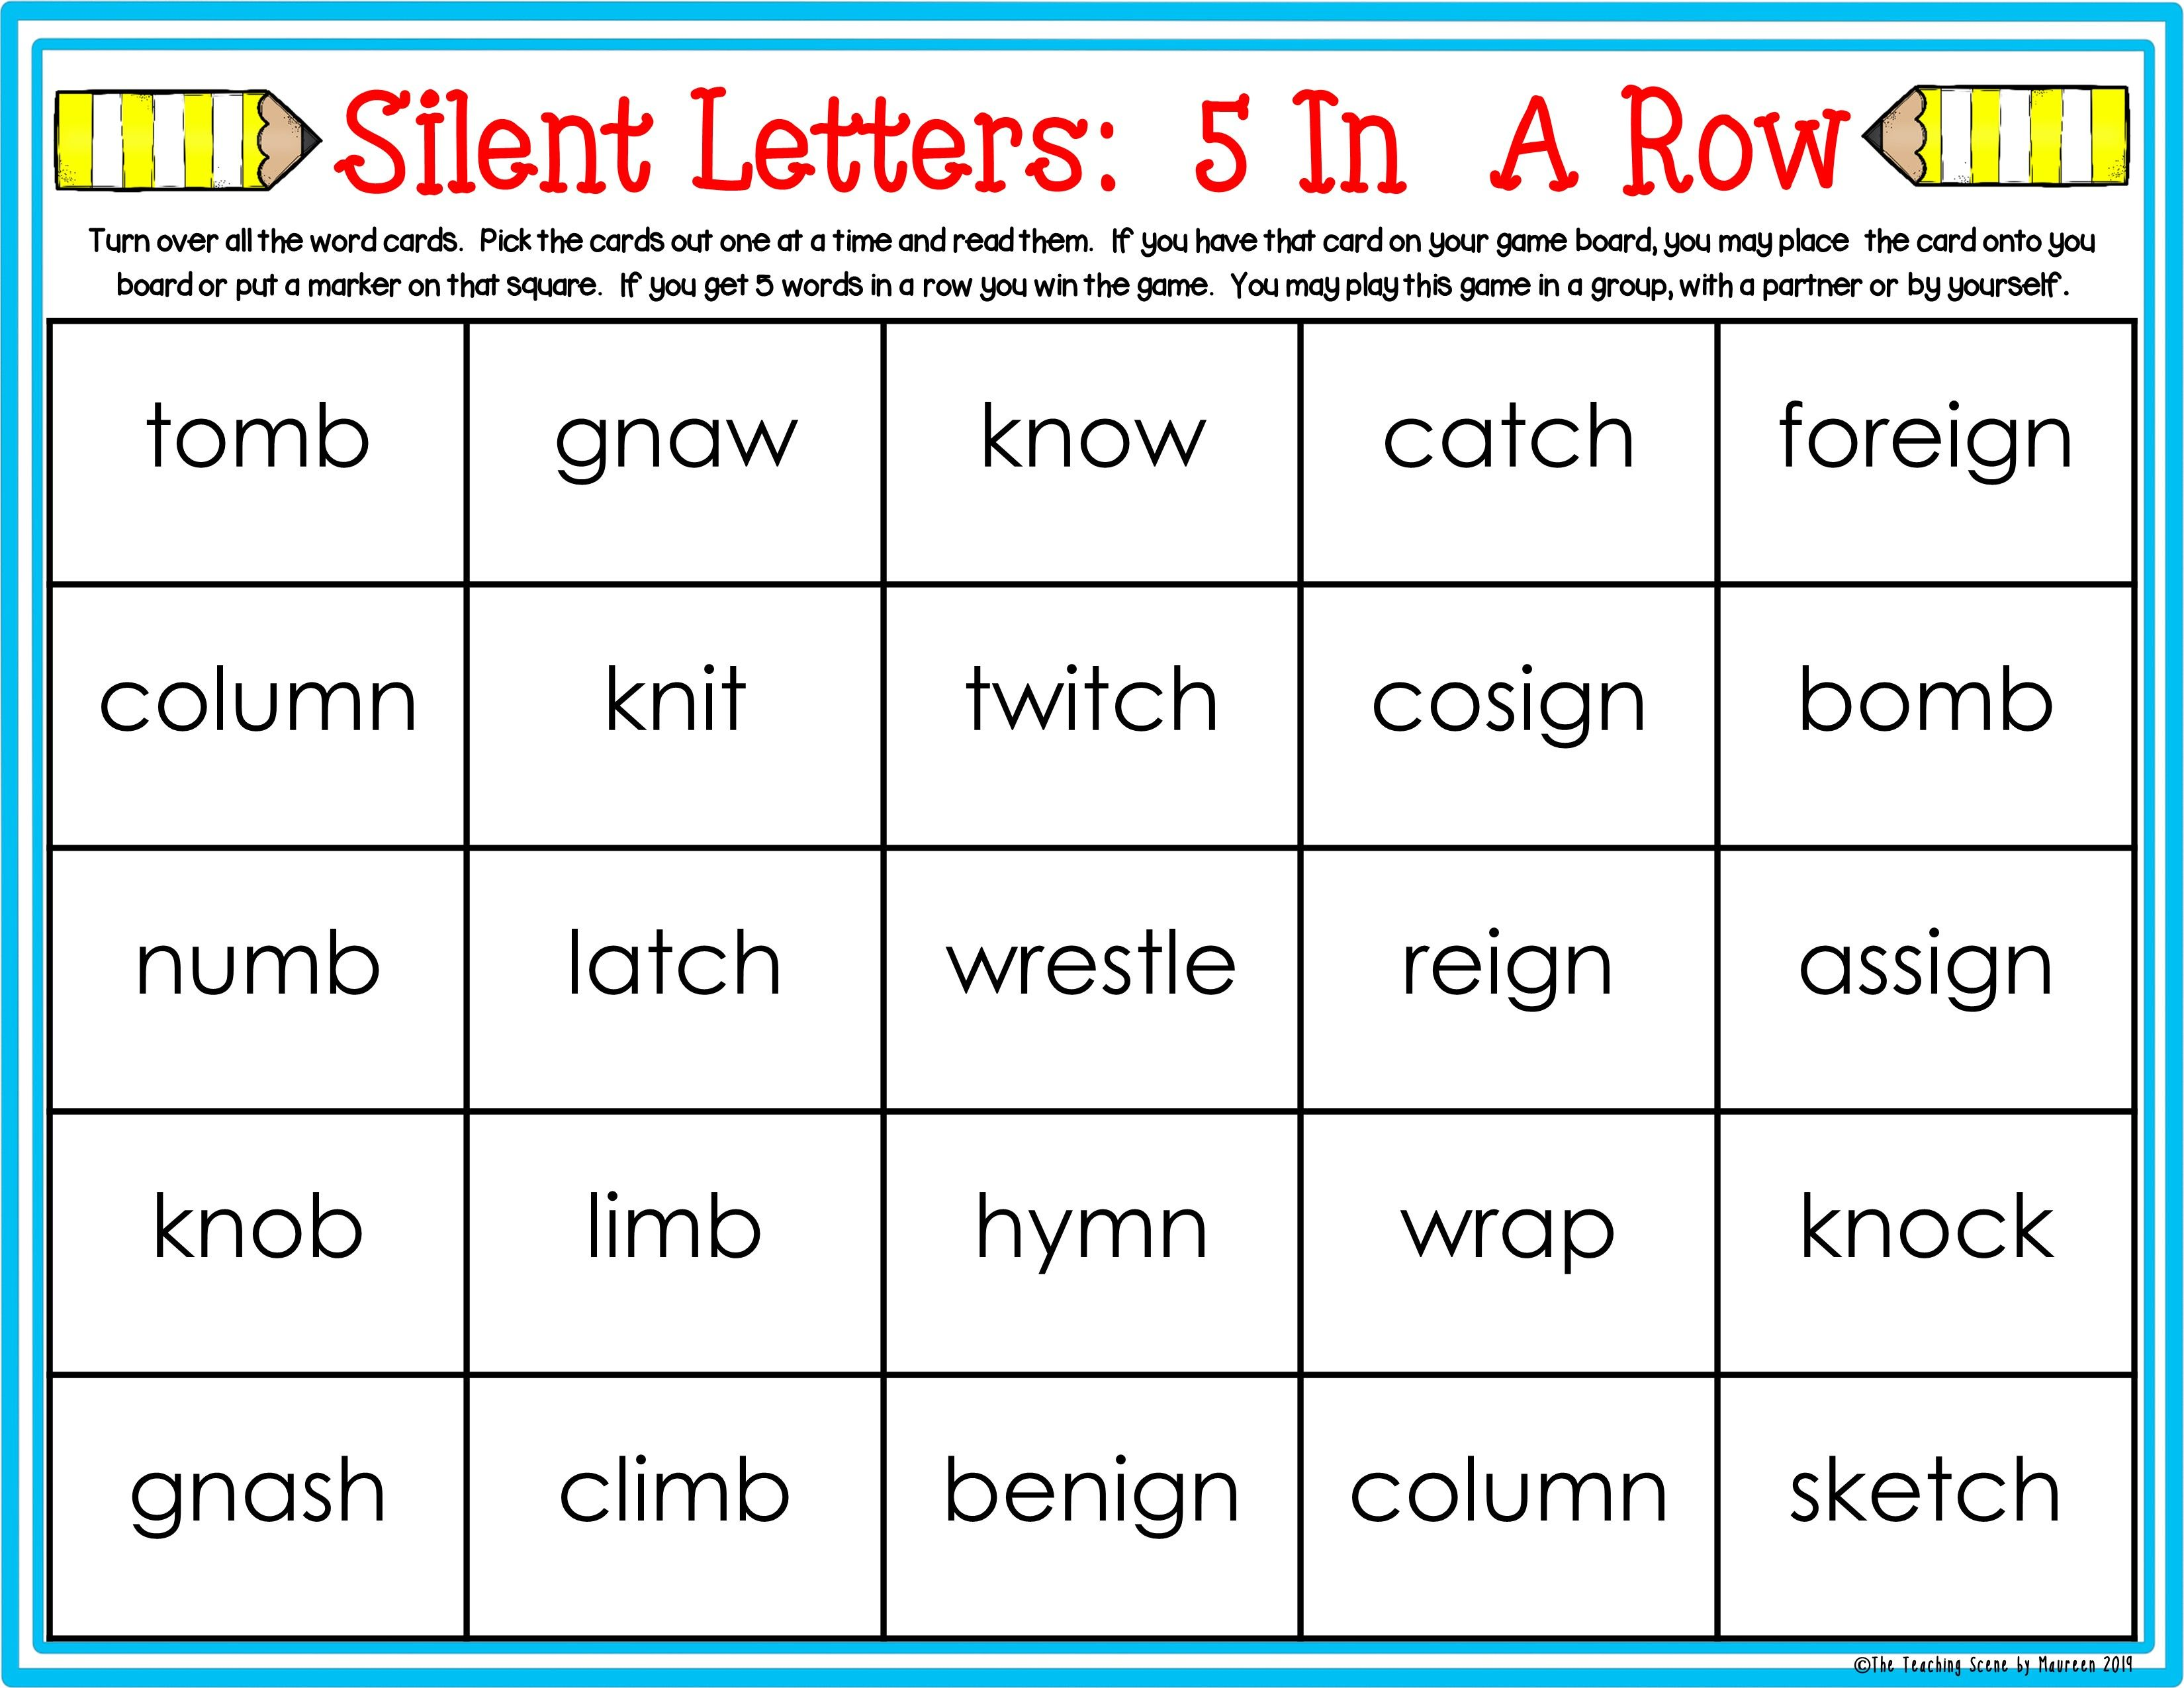 Silent Letter Centers Kn Wr Gn Gn Mn Mb Amp Tch